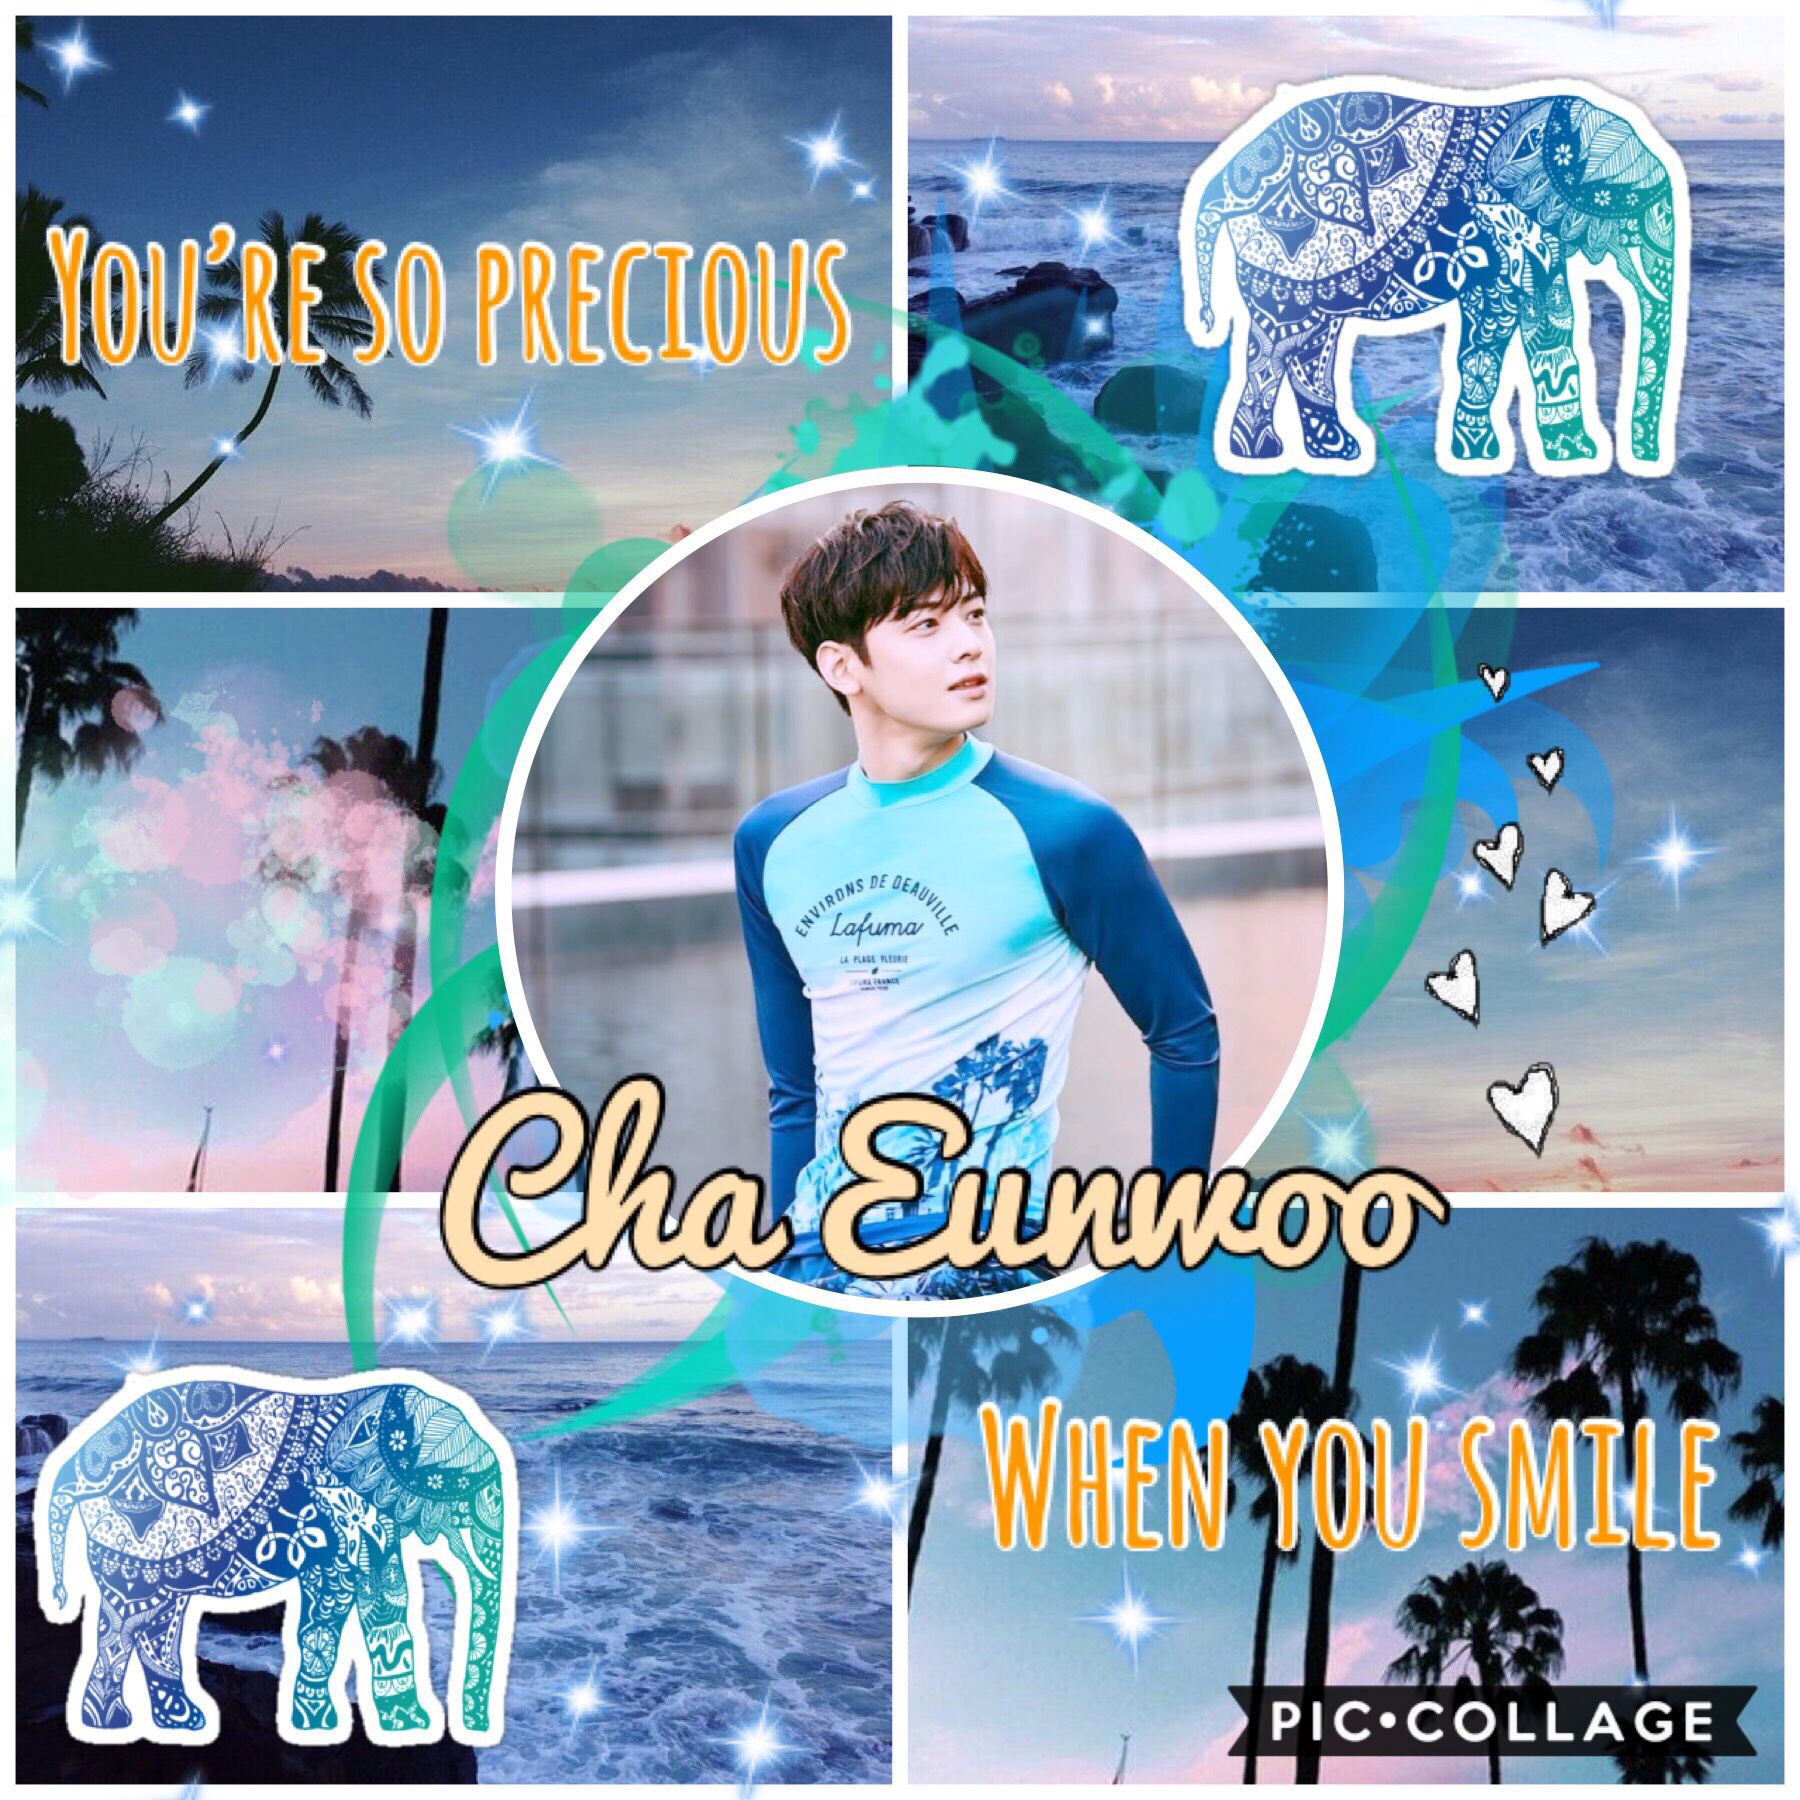 •Whoop Whoop• 🍃Eunwoo~Astro🍃 Edit for @BeuTeaFul! I hope you like it sista💓  Cha Eunwoo is the best looking human being out there don't @me bc I'll fight:)😘 His smile also makes me feel super happy😁